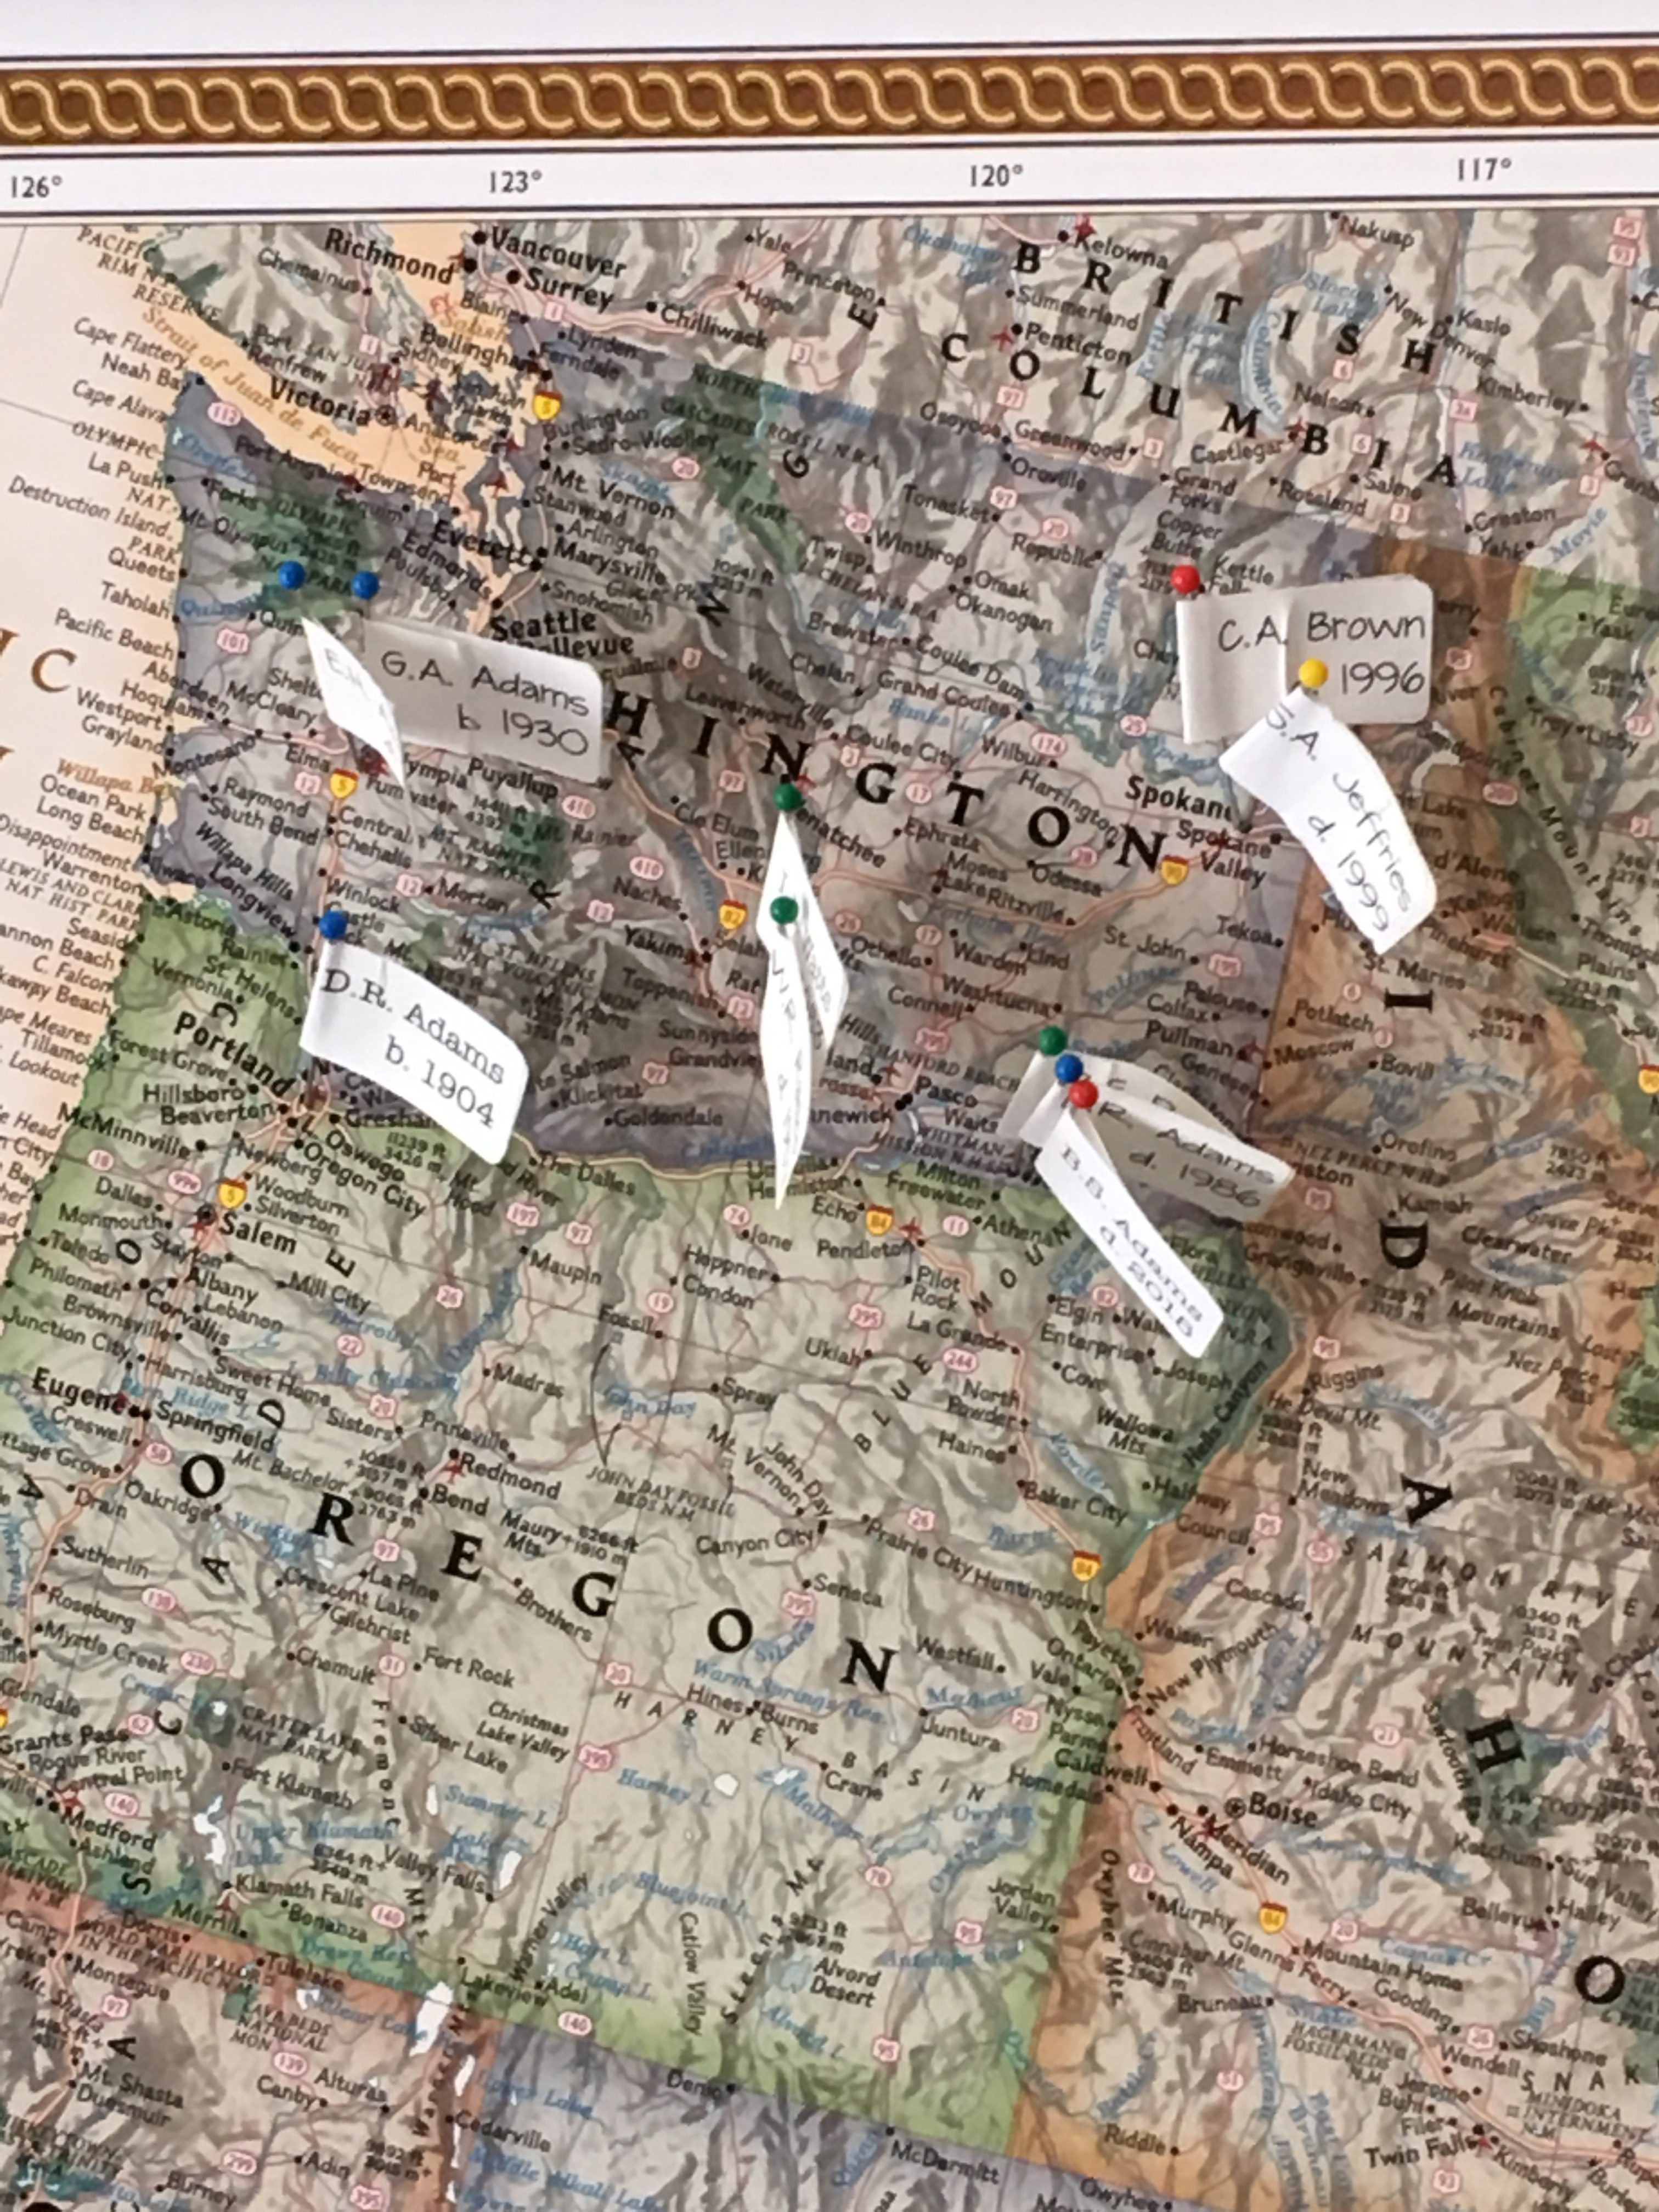 Maps archives organize your family history its been a fun exercise and im looking forward to adding more pins to my map gumiabroncs Images